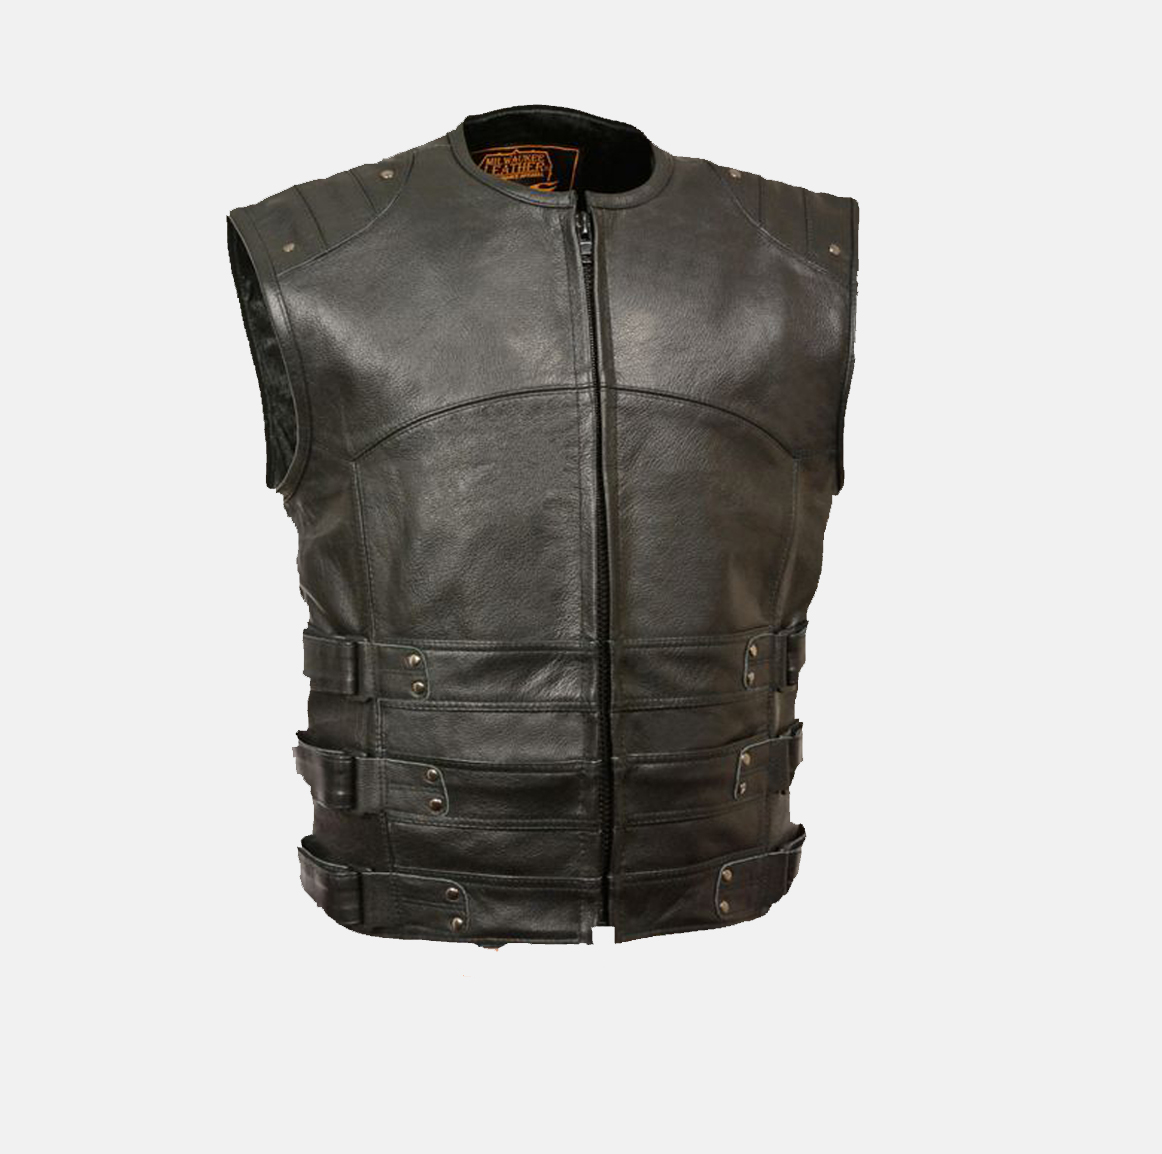 Vests Mens Cut Off Motorcycle Waistcoat Cowhide Leather Black Biker Vest Jacket Motorcycle Street Gear